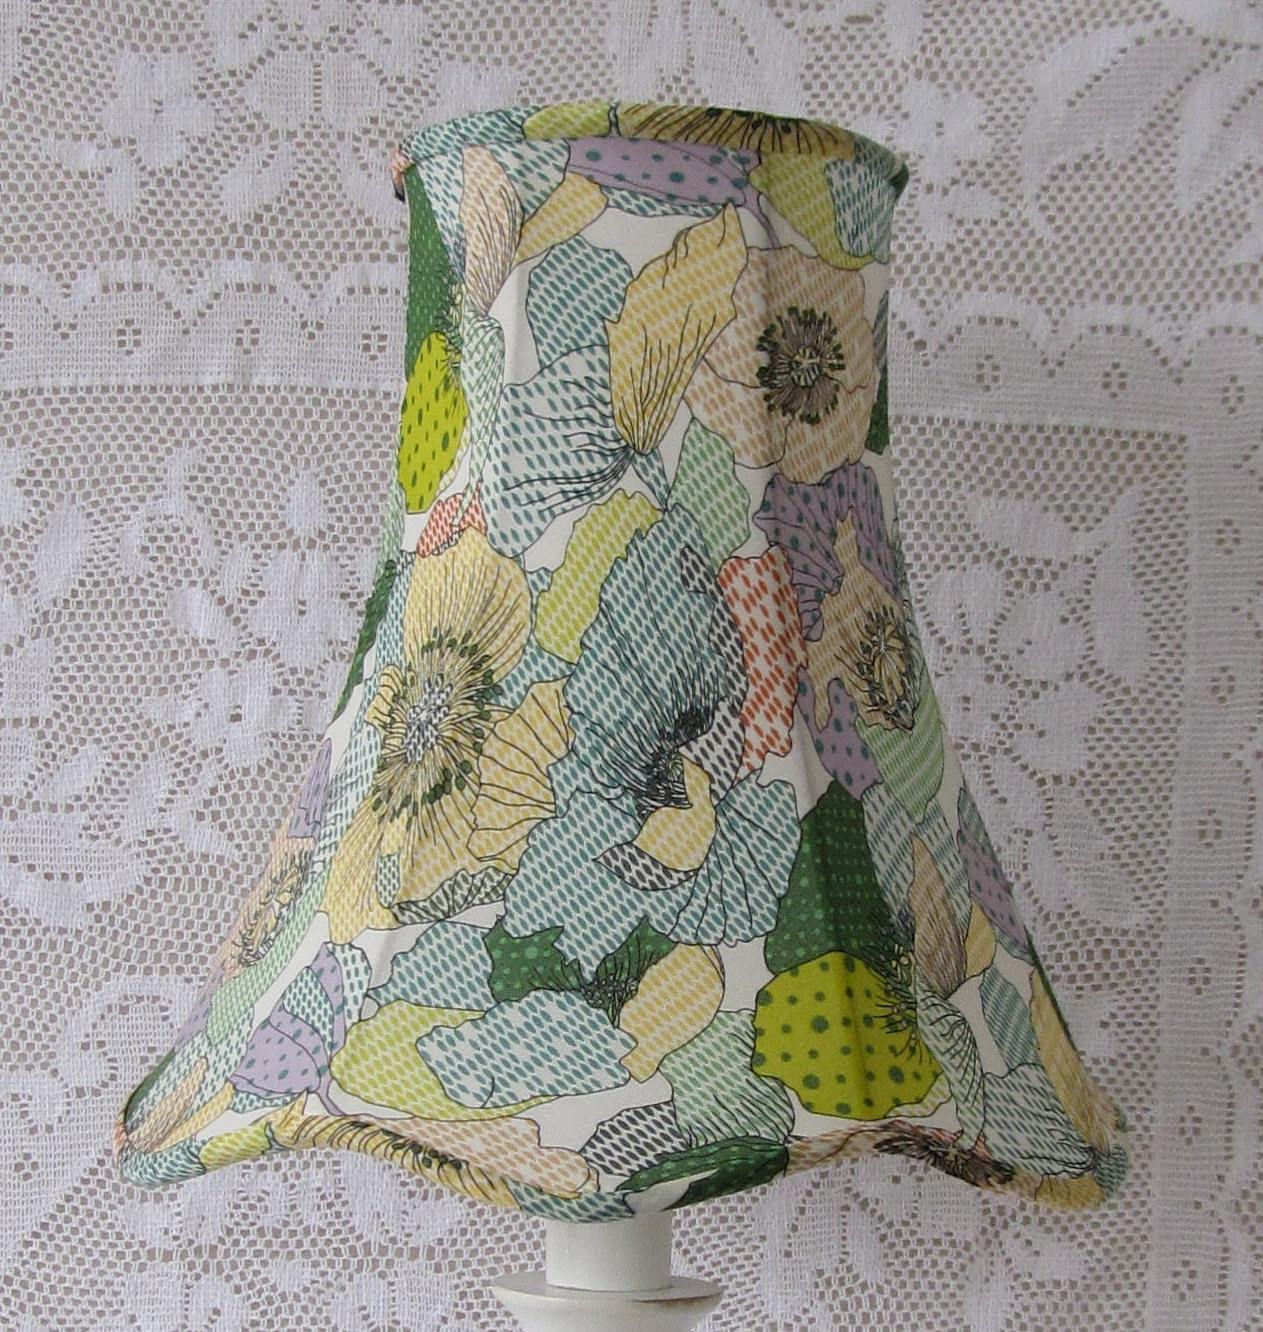 Small things simple pleasures how to recover a lampshade tutorial how to recover a lampshade tutorial aloadofball Images